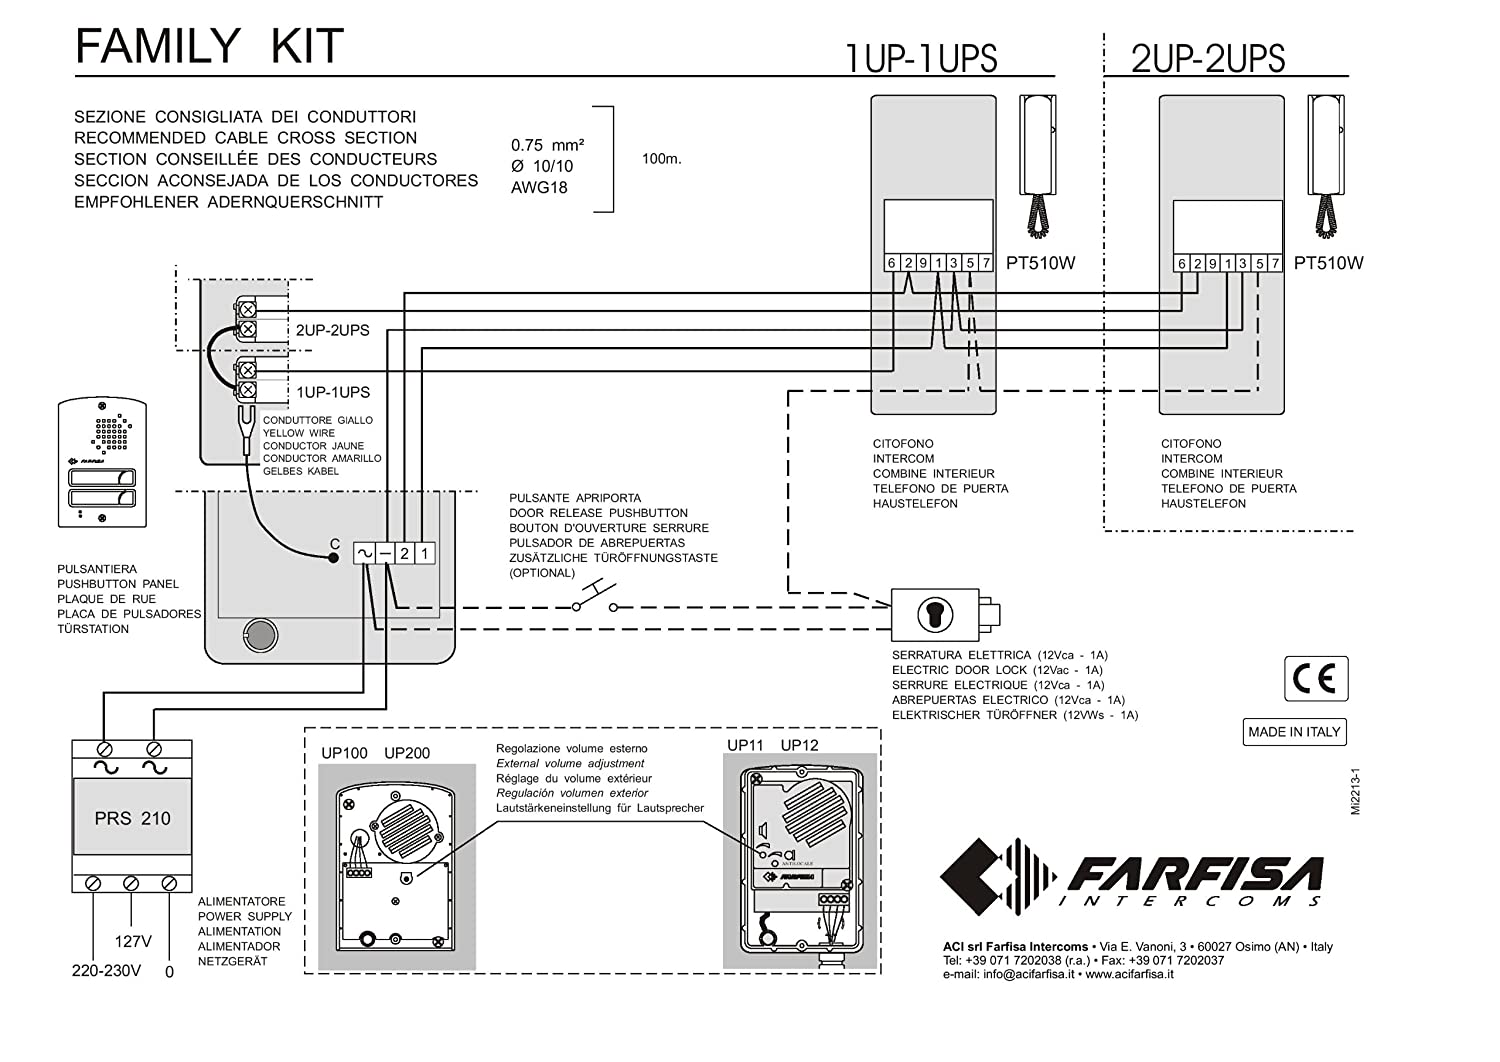 81VvKBixesL._SL1500_ amazon com o9n farfisa 1ups door entry audio intercom 2 way farfisa wiring diagram at panicattacktreatment.co